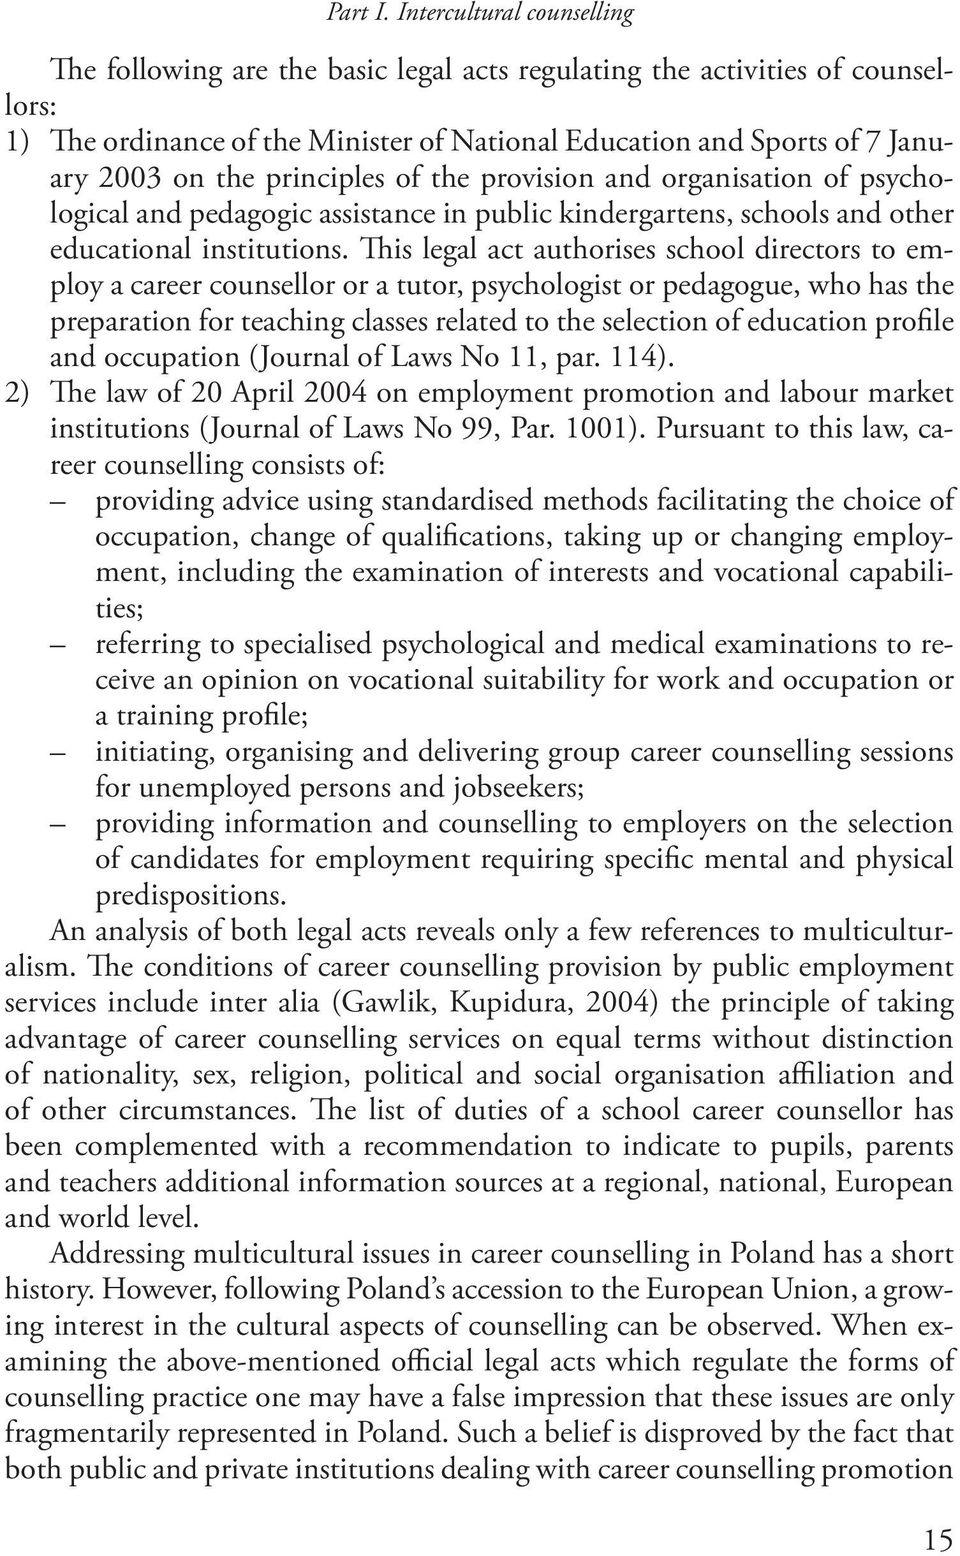 principles of the provision and organisation of psychological and pedagogic assistance in public kindergartens, schools and other educational institutions.